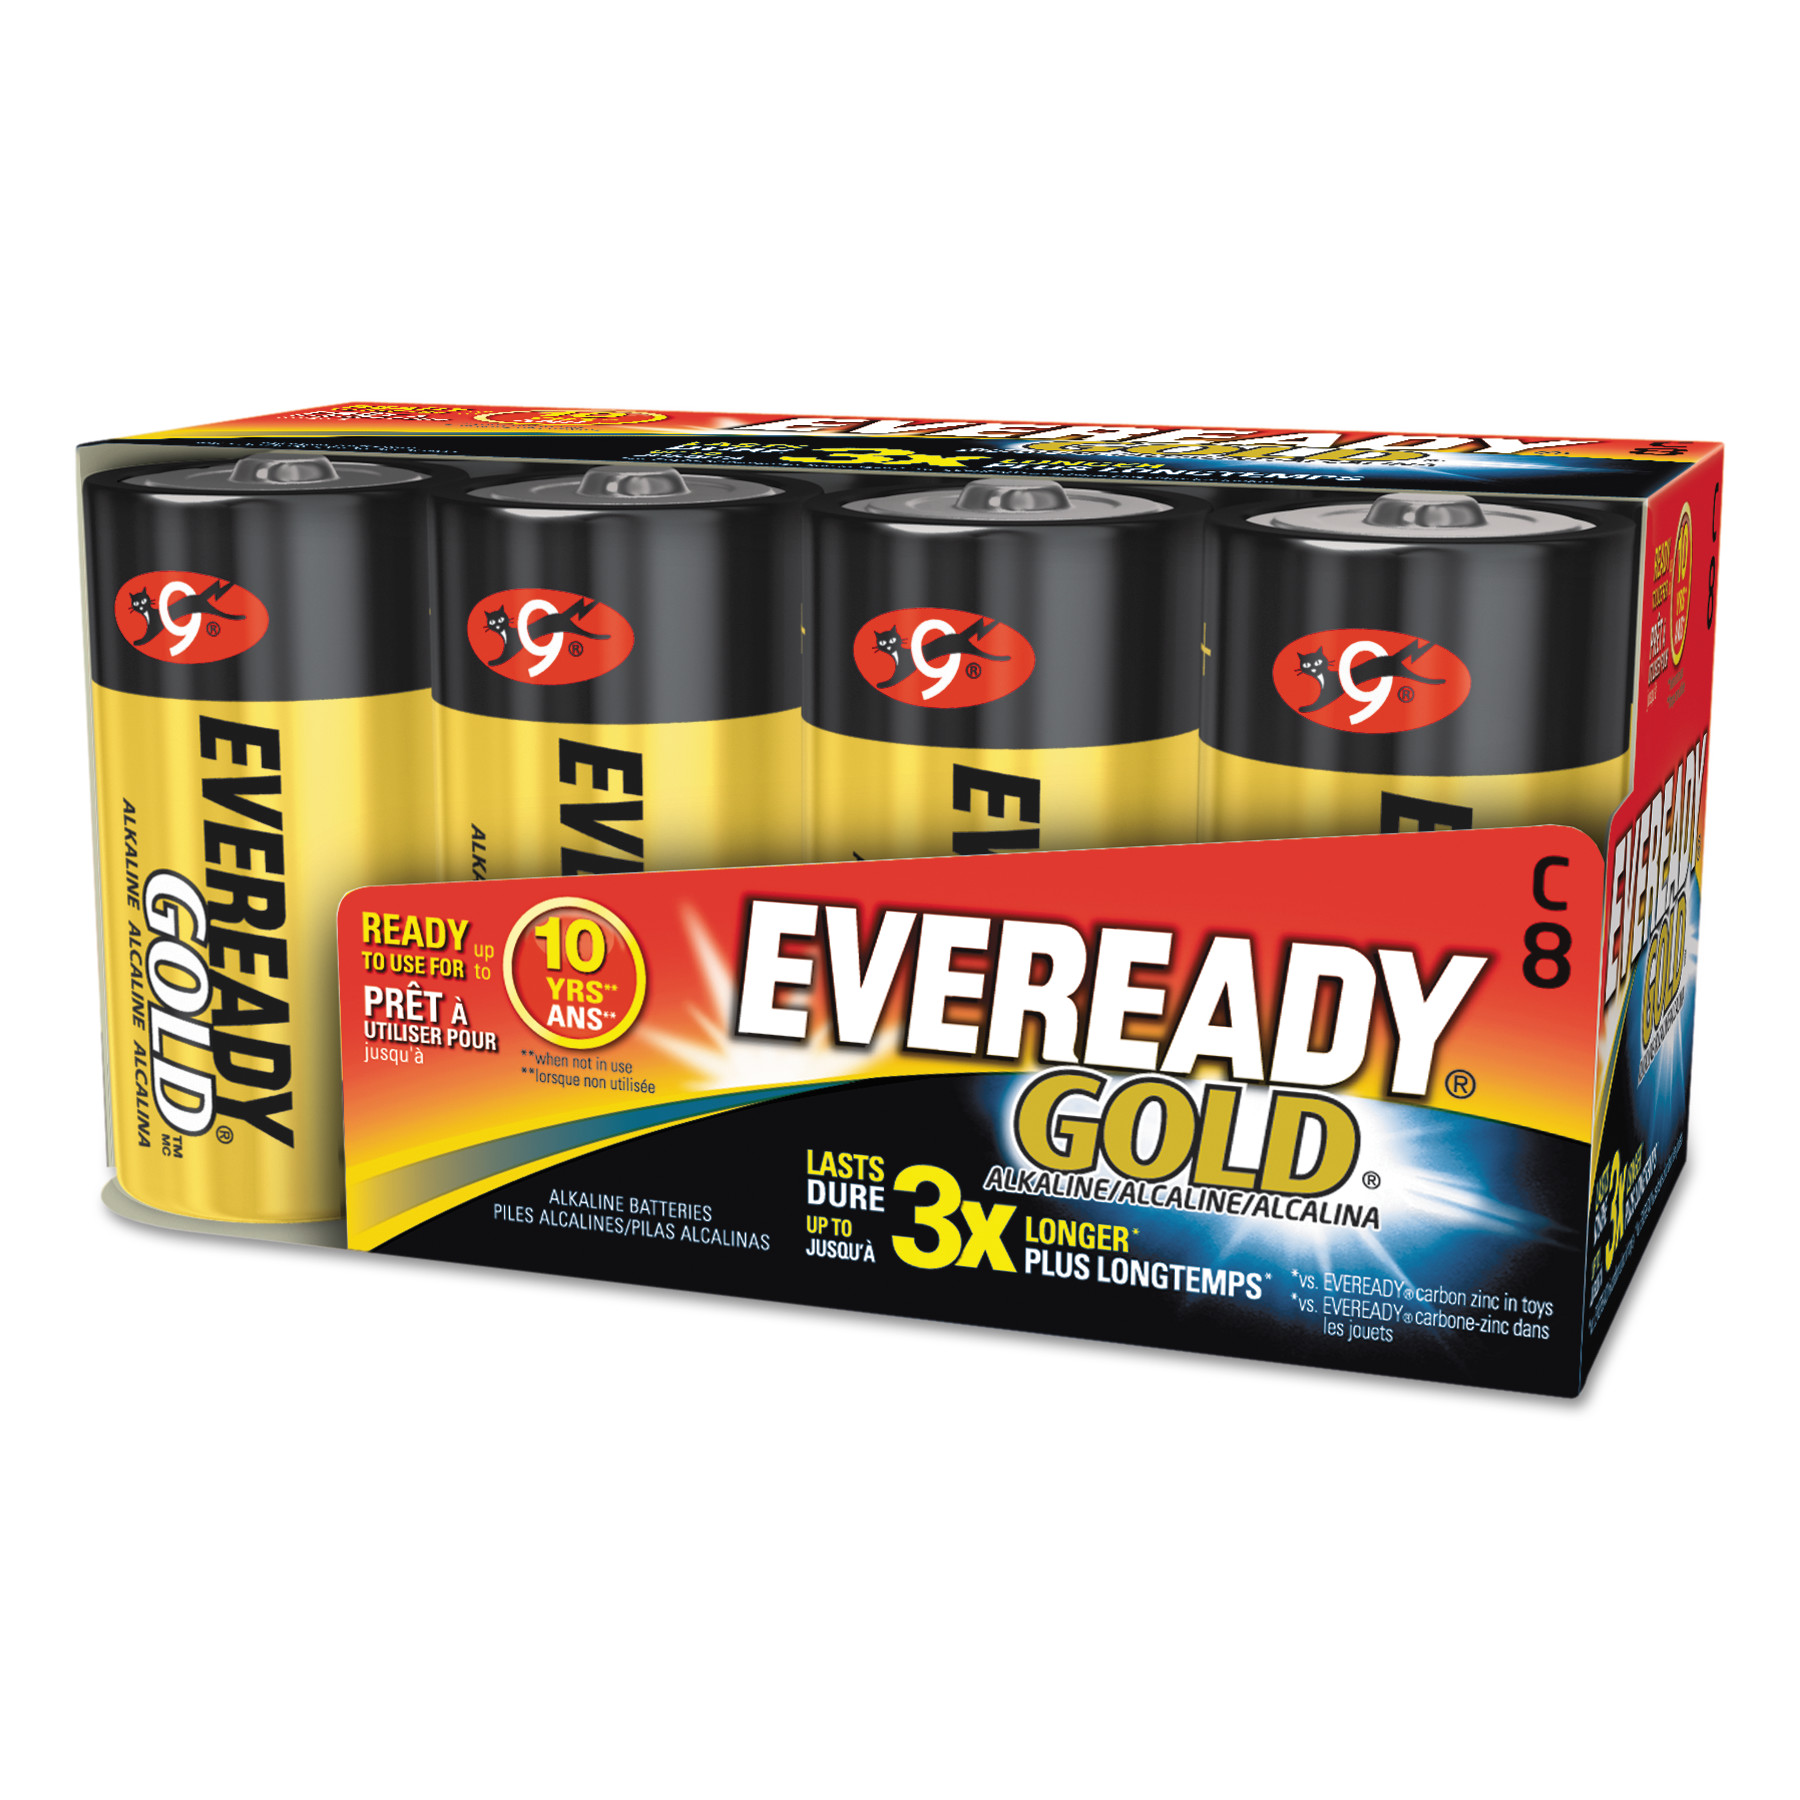 Eveready Gold Alkaline C Batteries, 8 Count